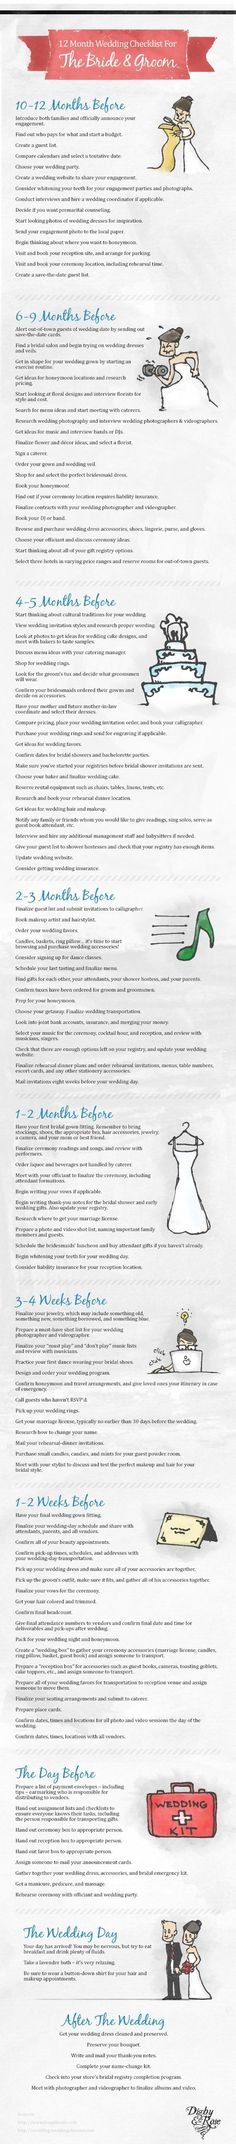 12 month wedding planning checklist - I will be SO happy I pinned this someday.